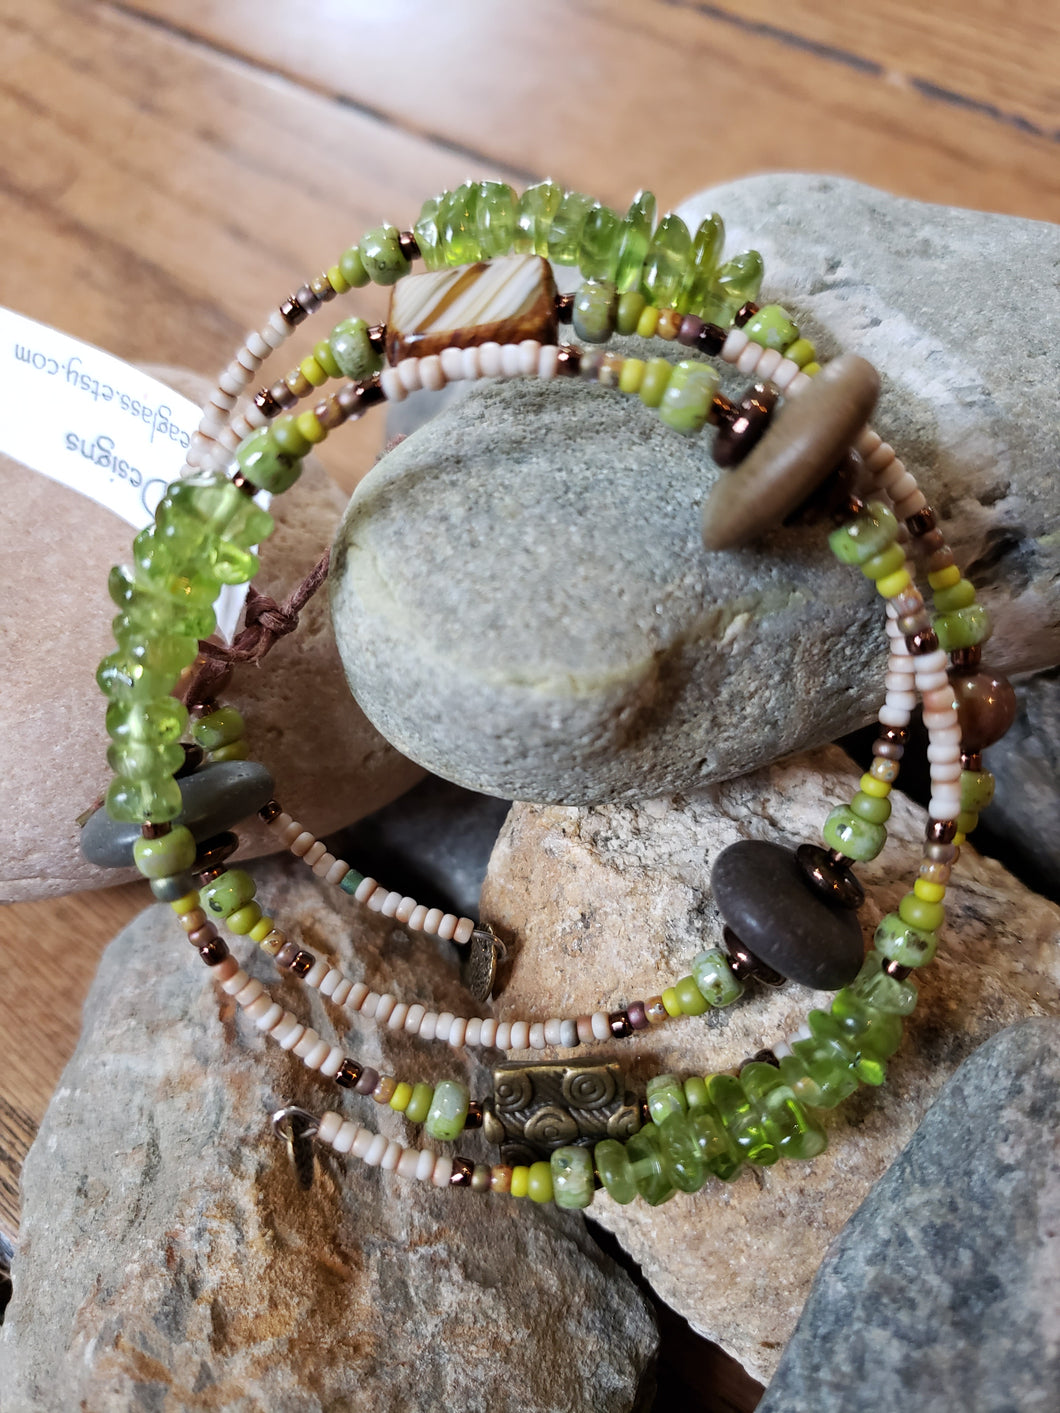 Iris Seaglass Design Jewelry - Bracelet Collection